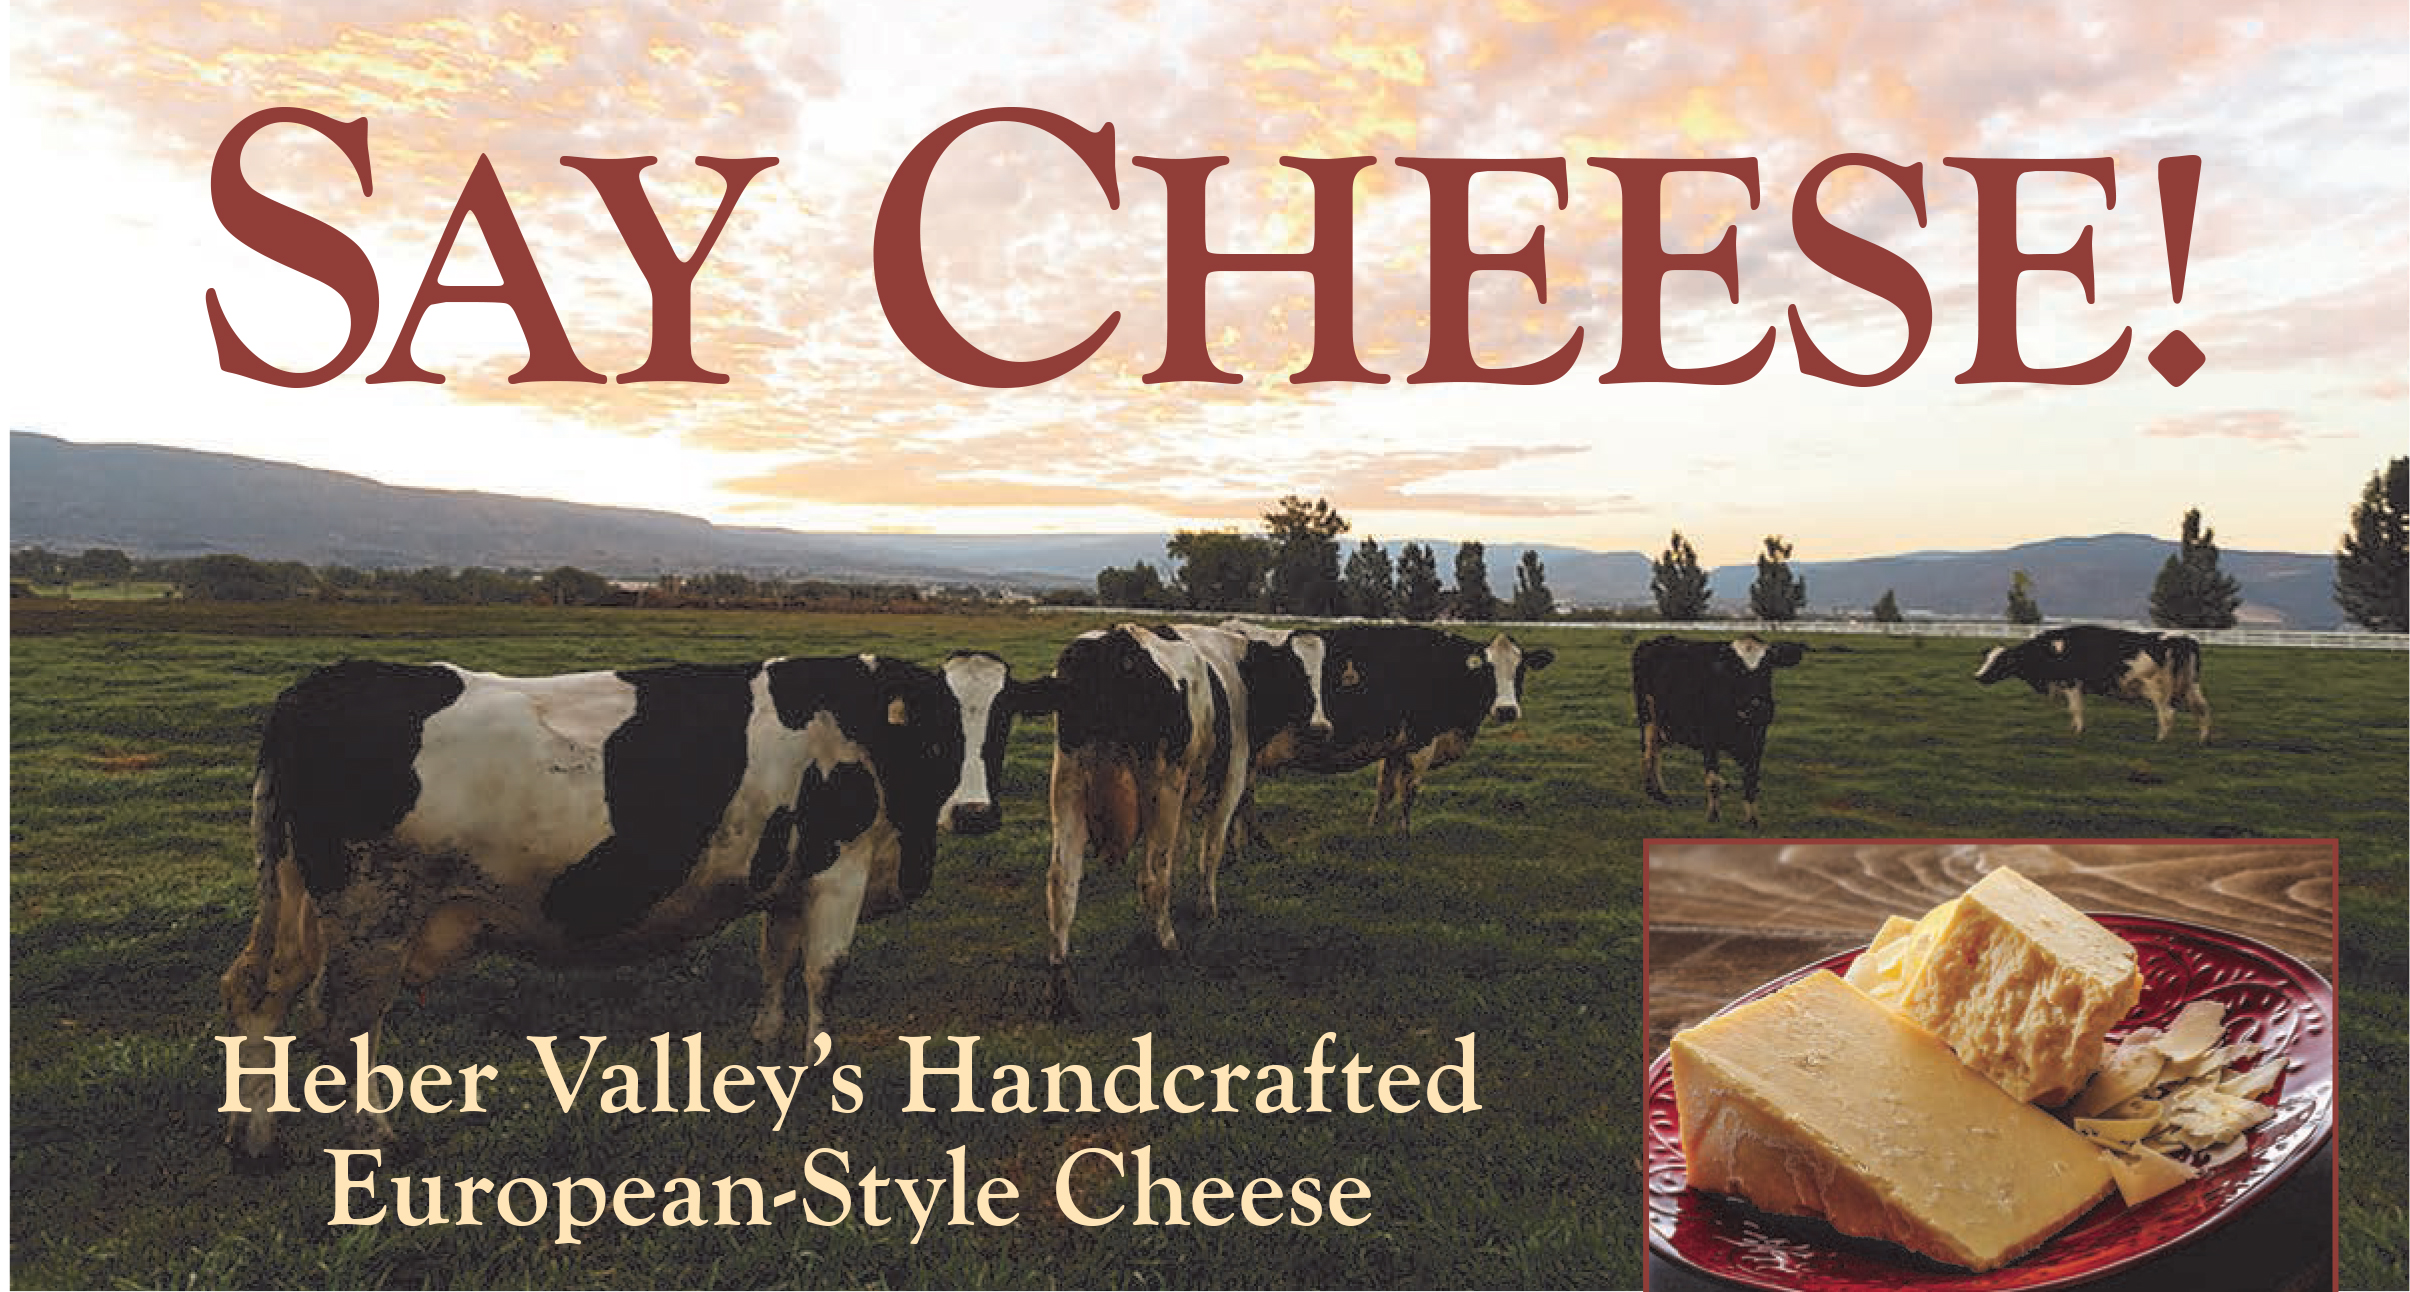 Heber Valley's Handcrafted European-Style Cheese - Mountain